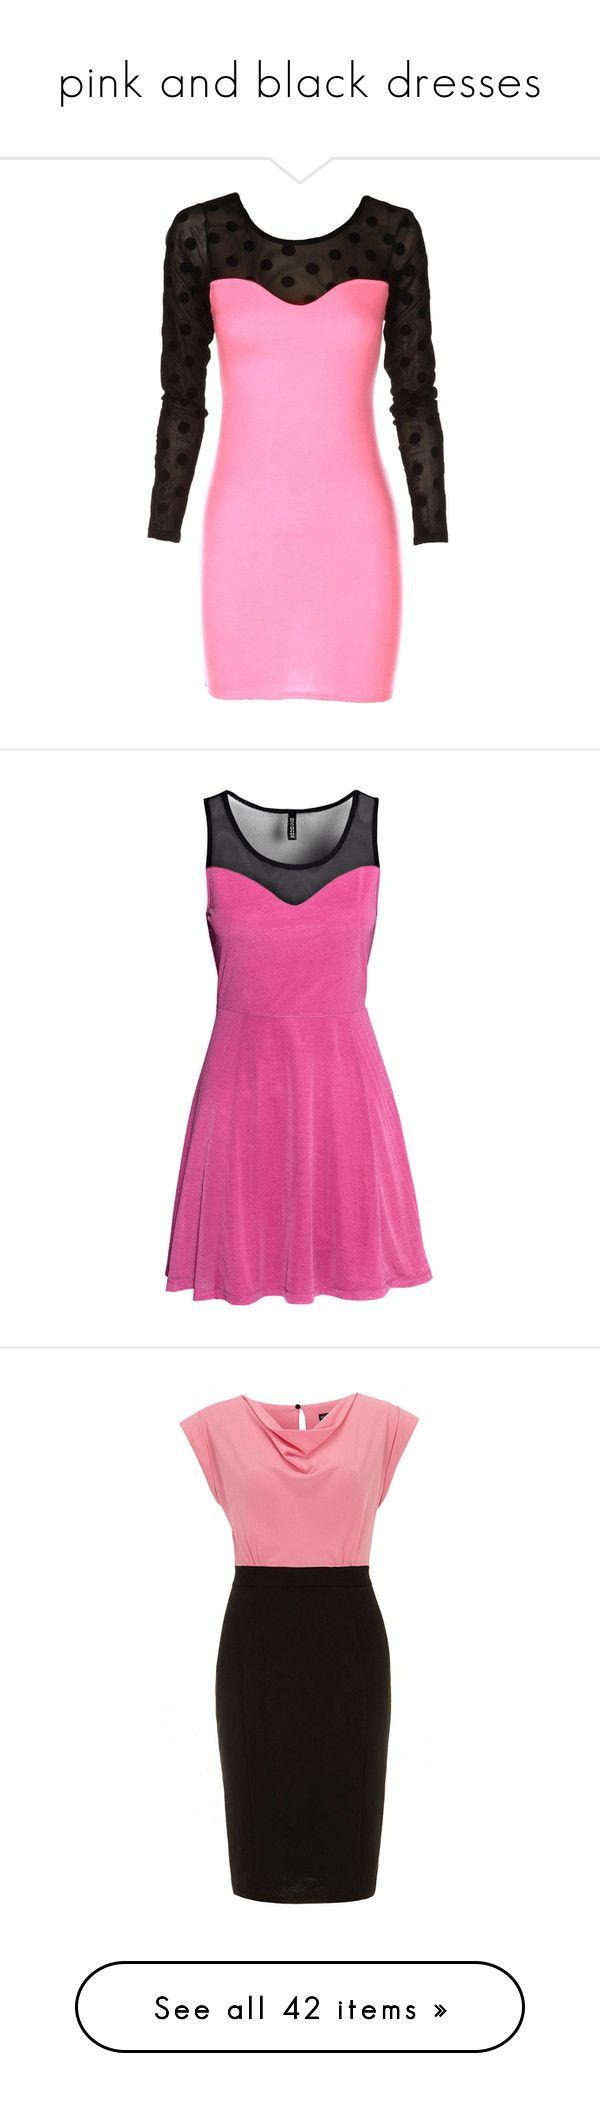 """""""pink and black dresses"""" by lulucosby ❤ liked on Polyvore featuring dresses, mesh bodycon dress, long sleeve polka dot dress, pink dress, pink polka dot dress, mesh dress, h&m, shiny dress, sleeveless short dress and short dresses"""